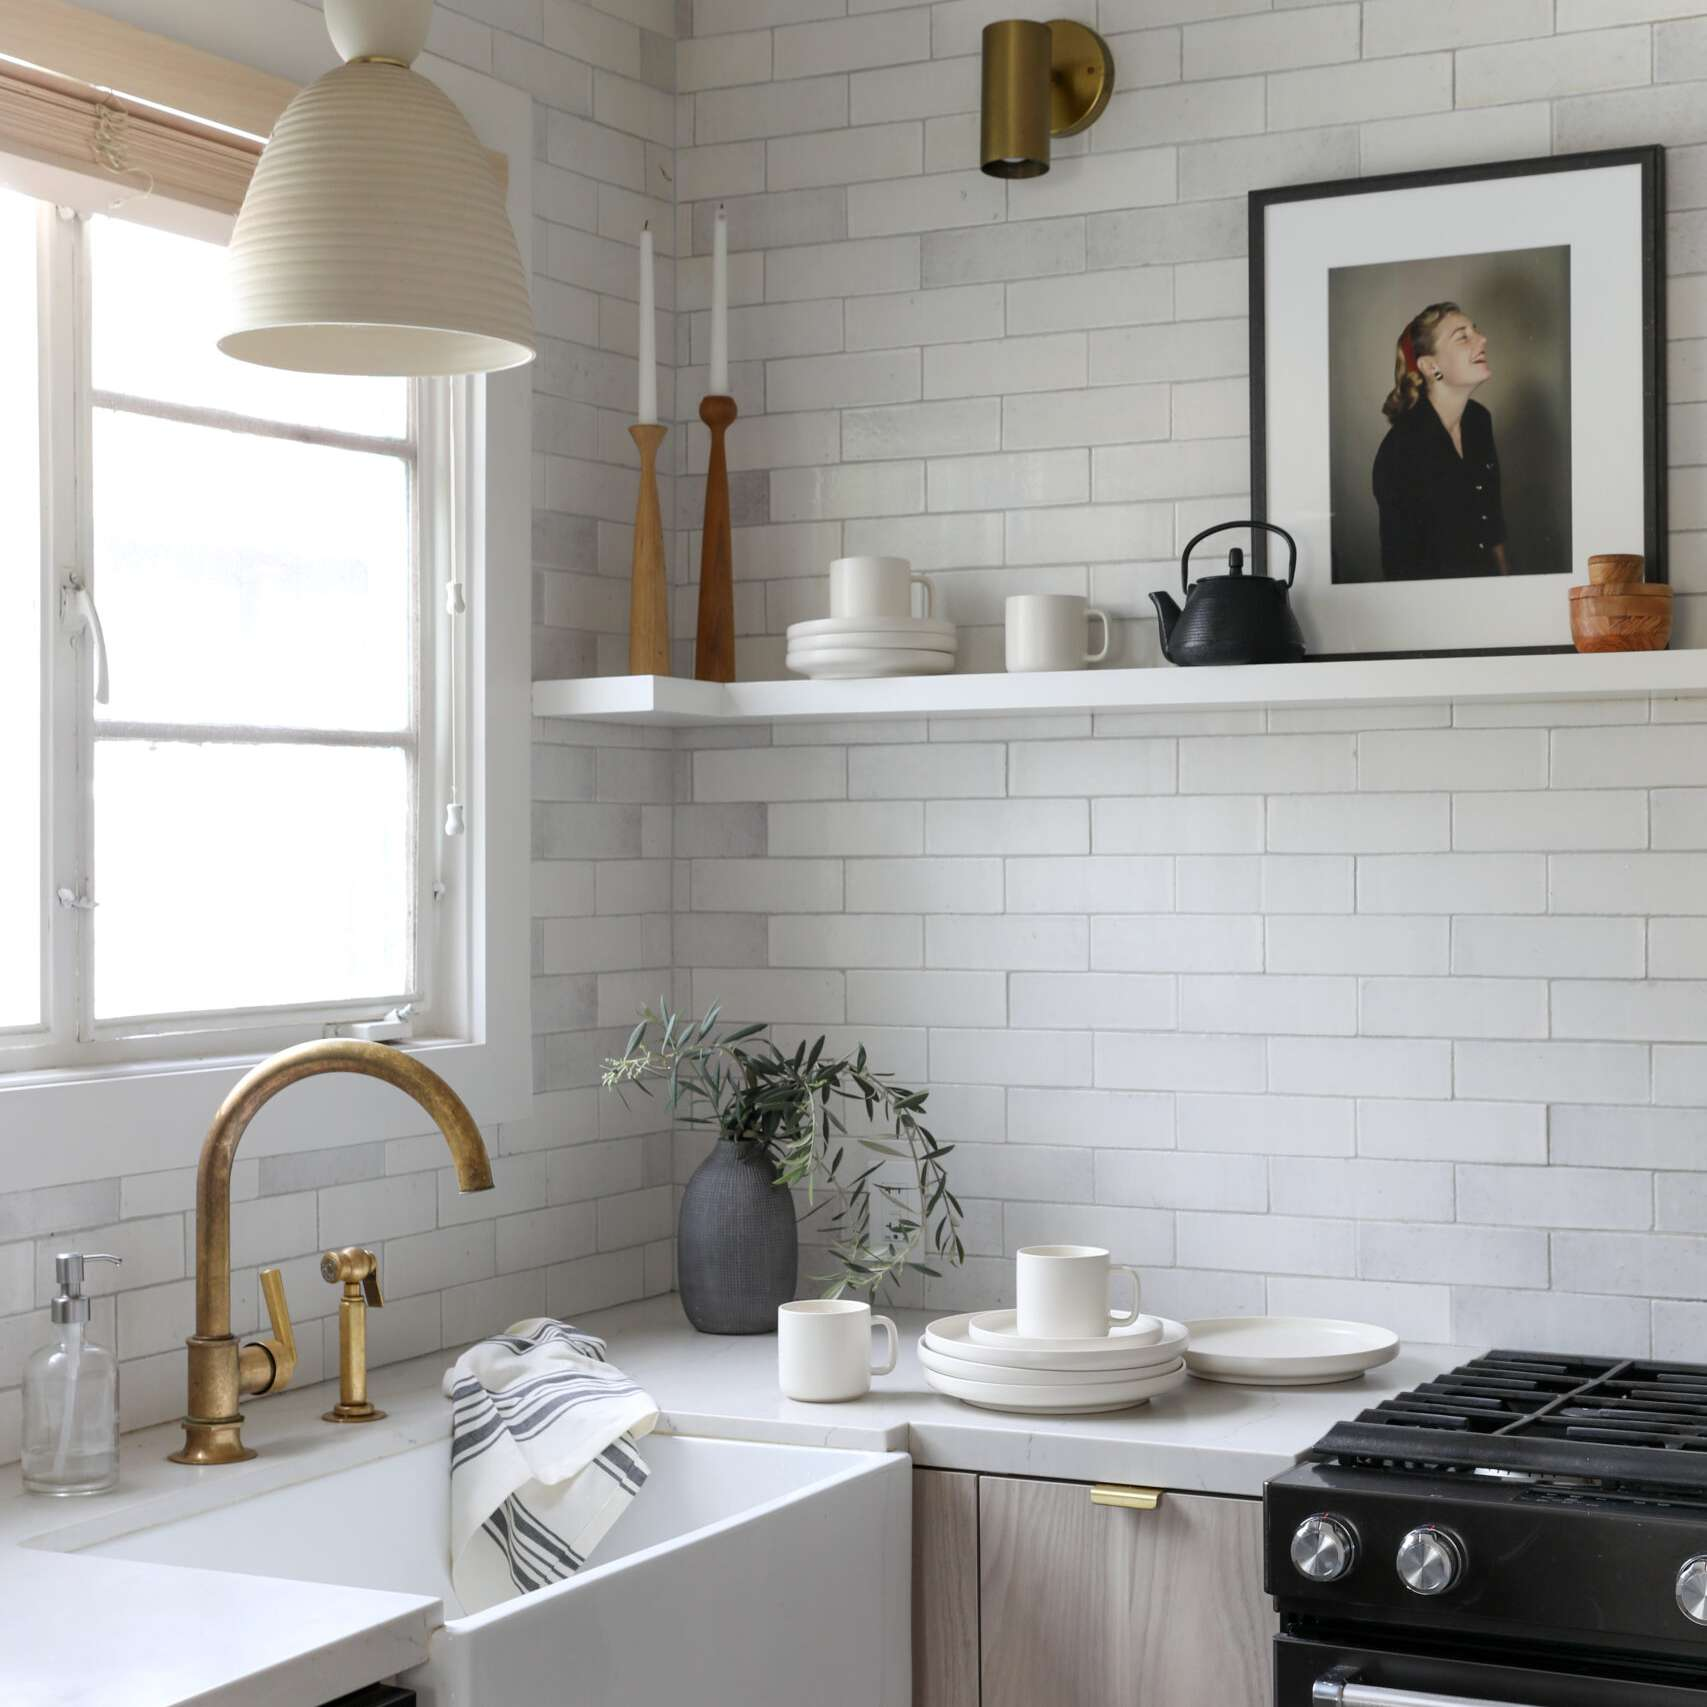 A kitchen corner with a few white plates and bowls